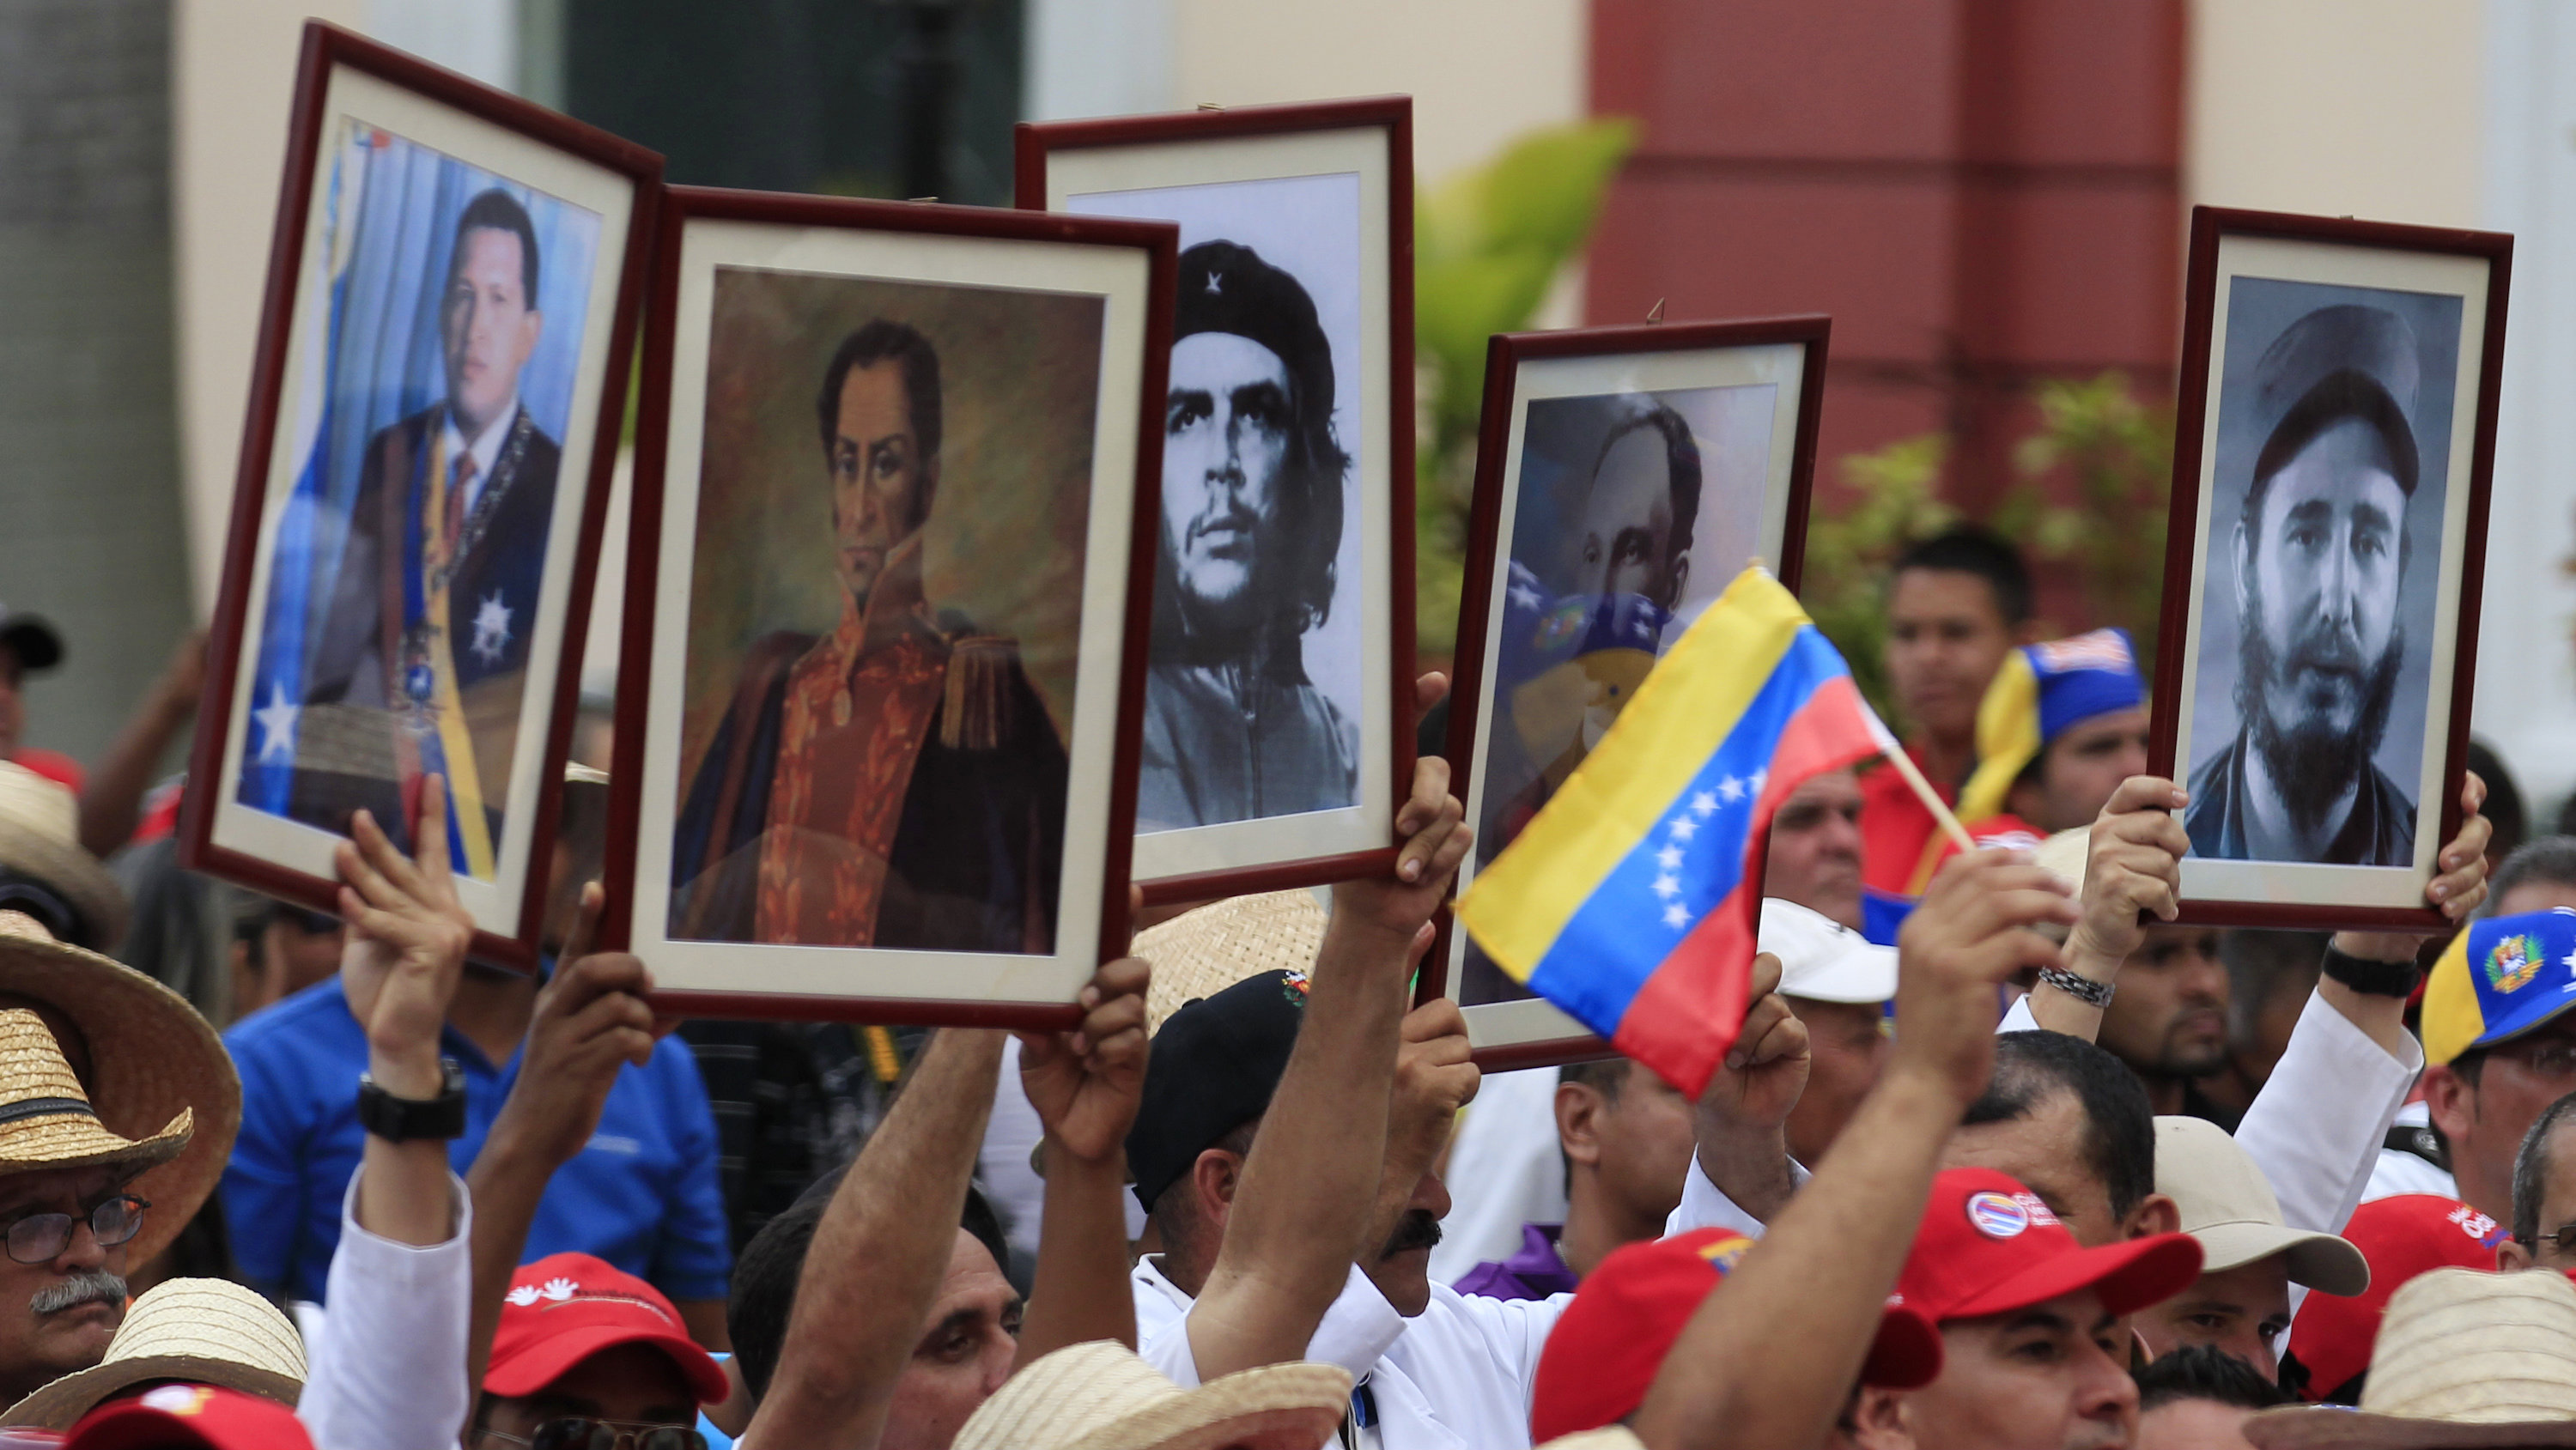 Cuban doctors hold up framed pictures (L-R) of late President Hugo Chavez, Venezuela's National hero Simon Bolivar, Ernesto 'Che' Guevara, Cuban national hero Jose Marti and Fidel Castro during a march of farmers in support of Venezuela's President Nicolas Maduro in Caracas February 26, 2014. Pope Francis called on Wednesday for an end to violence in Venezuela that has killed at least 13 people and urged politicians to take the lead in calming the nation's worst unrest for a decade. Both political camps were demonstrating in cities around the country. In the capital Caracas, female opposition supporters rallied while agricultural workers marched to the presidential palace in support of the socialist government.